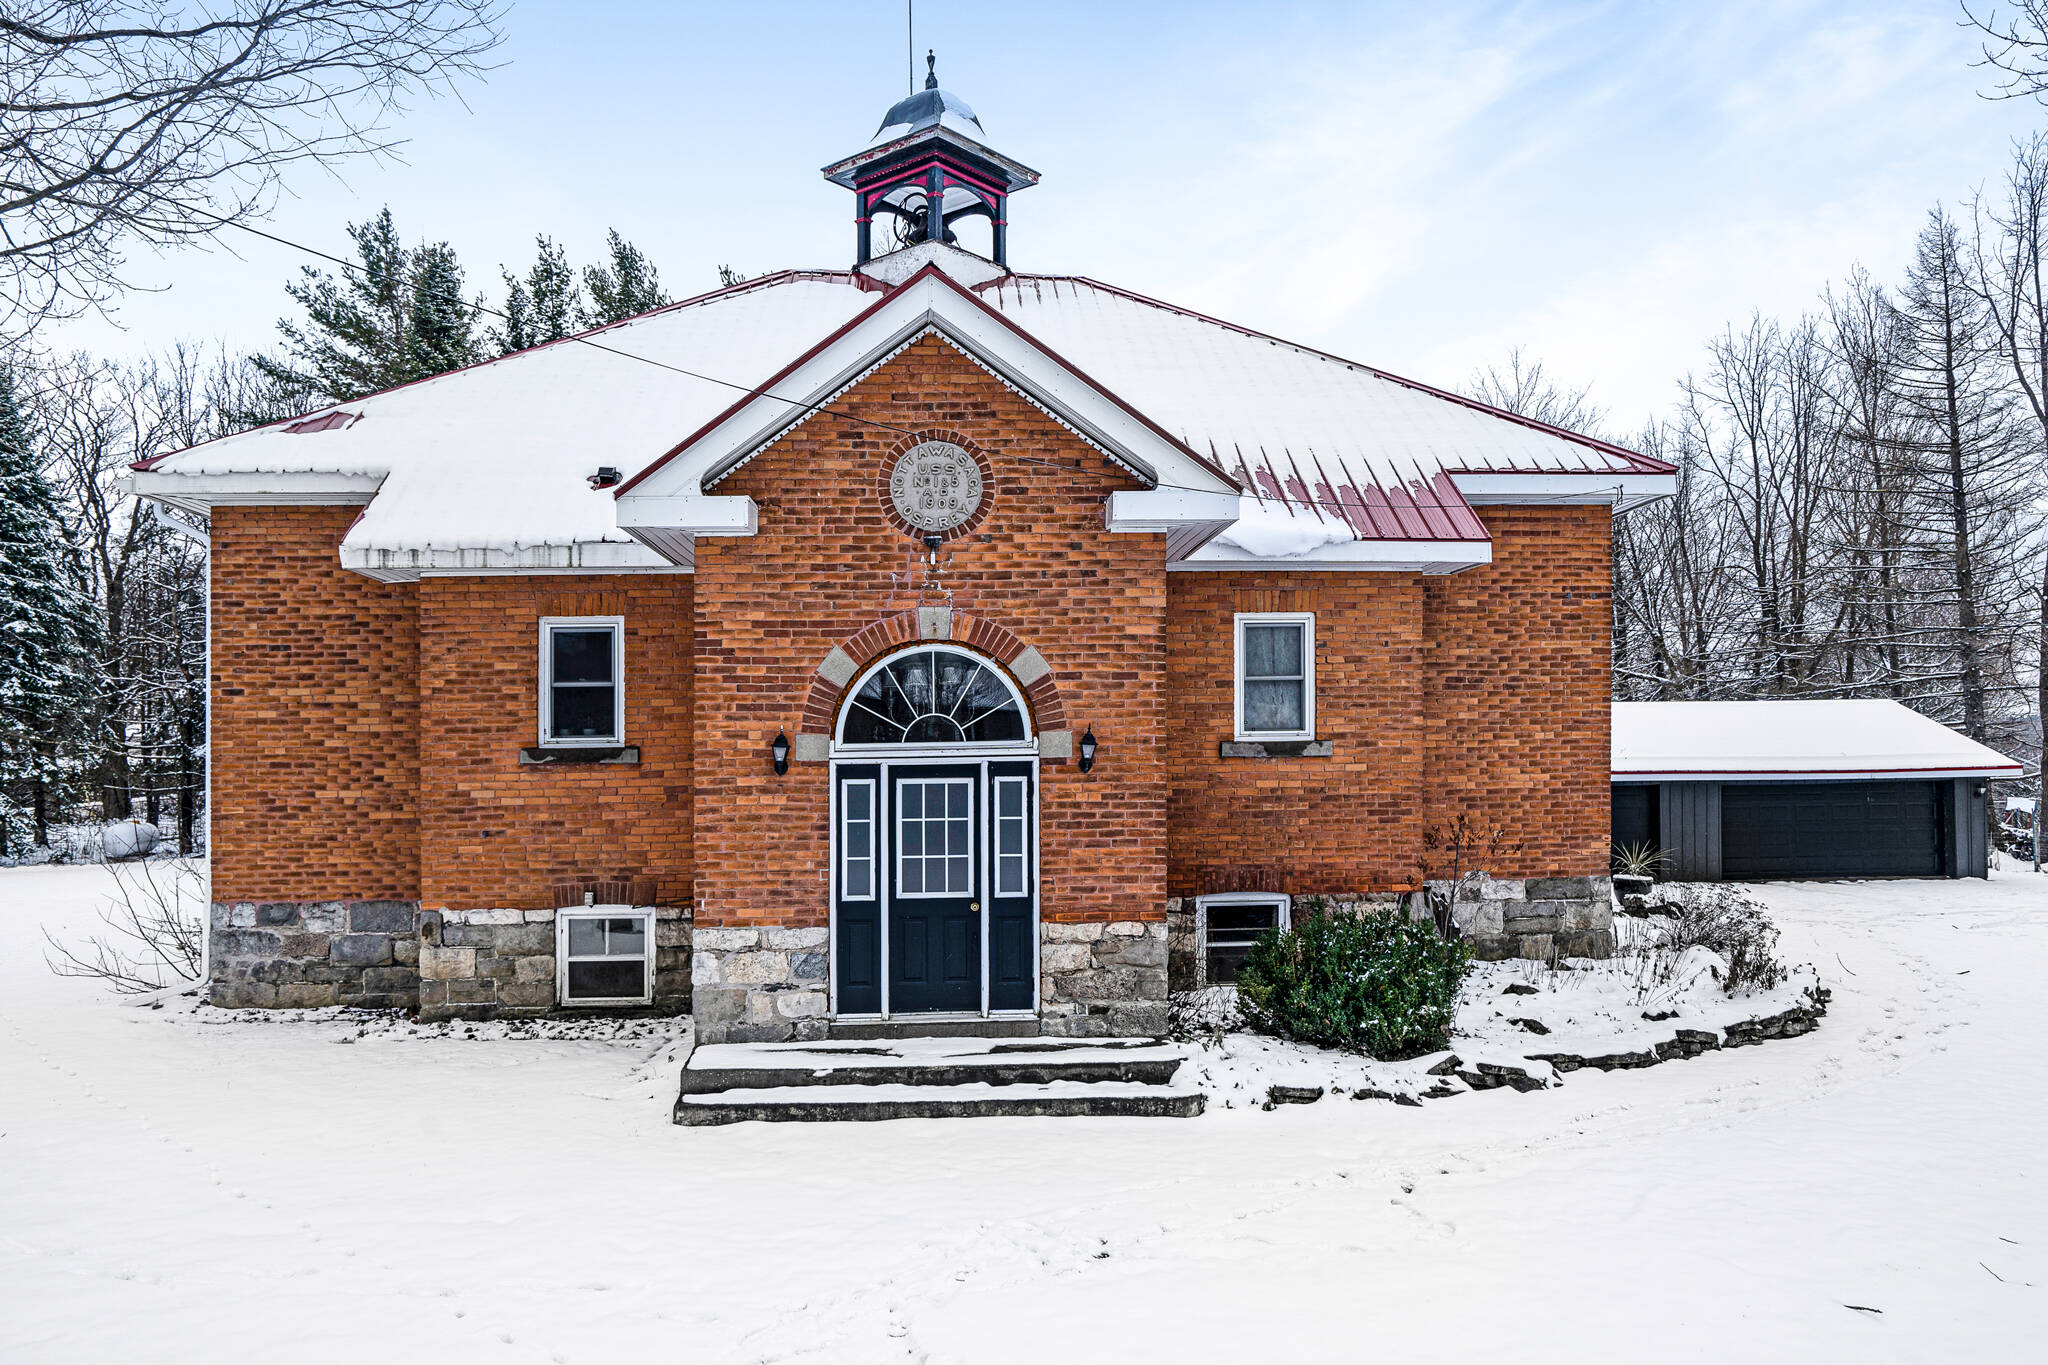 1029 simcoe county road 124 clearview